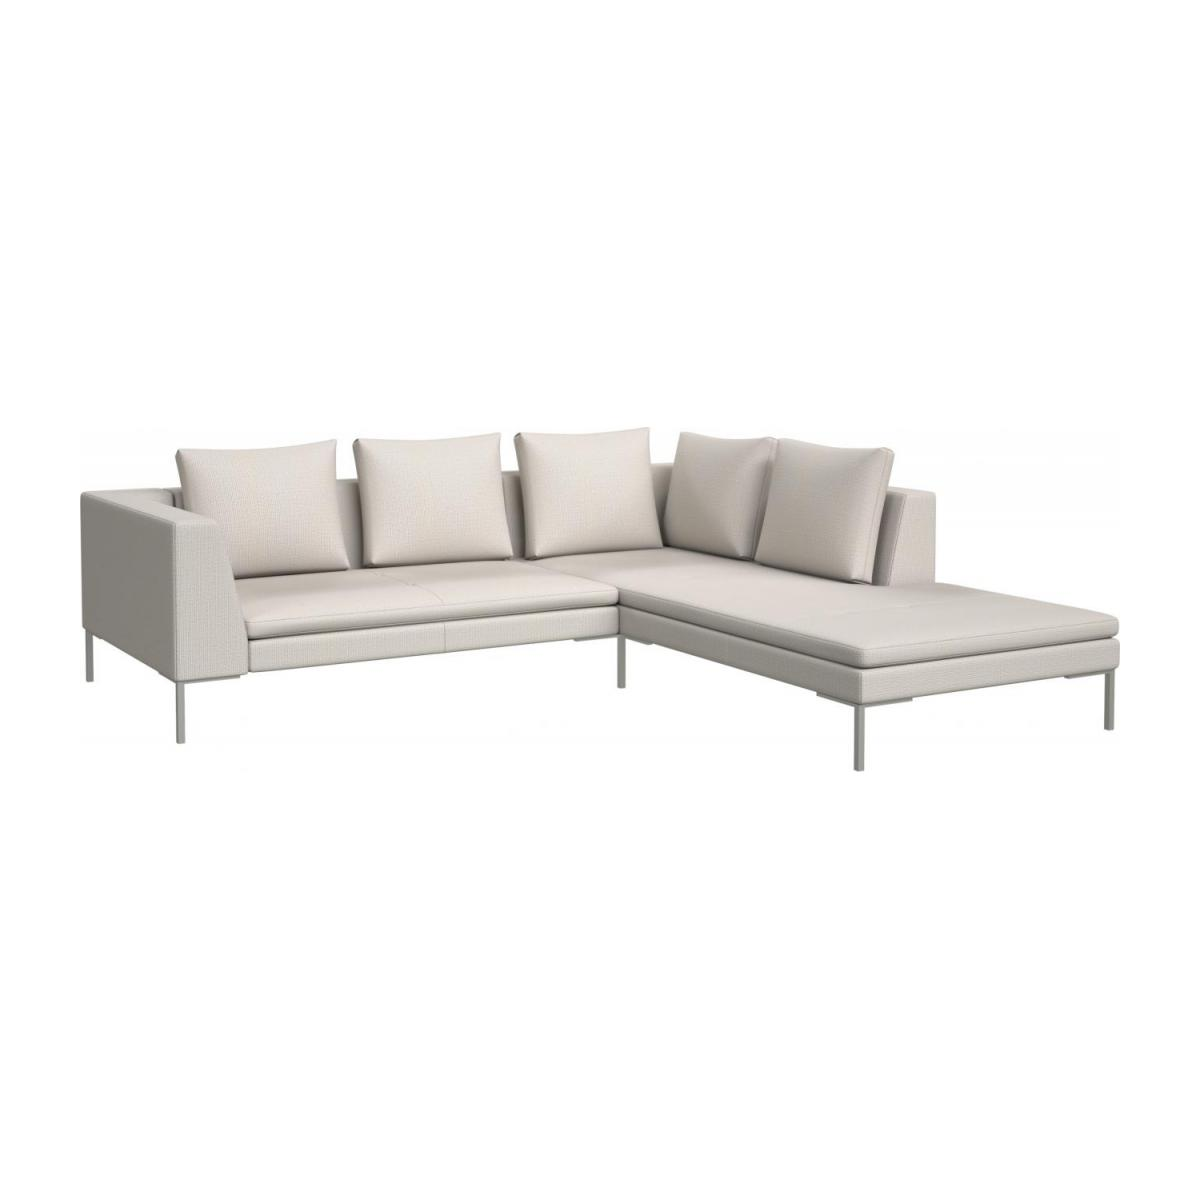 2 seater sofa with chaise longue on the right in Fasoli fabric, snow white  n°1